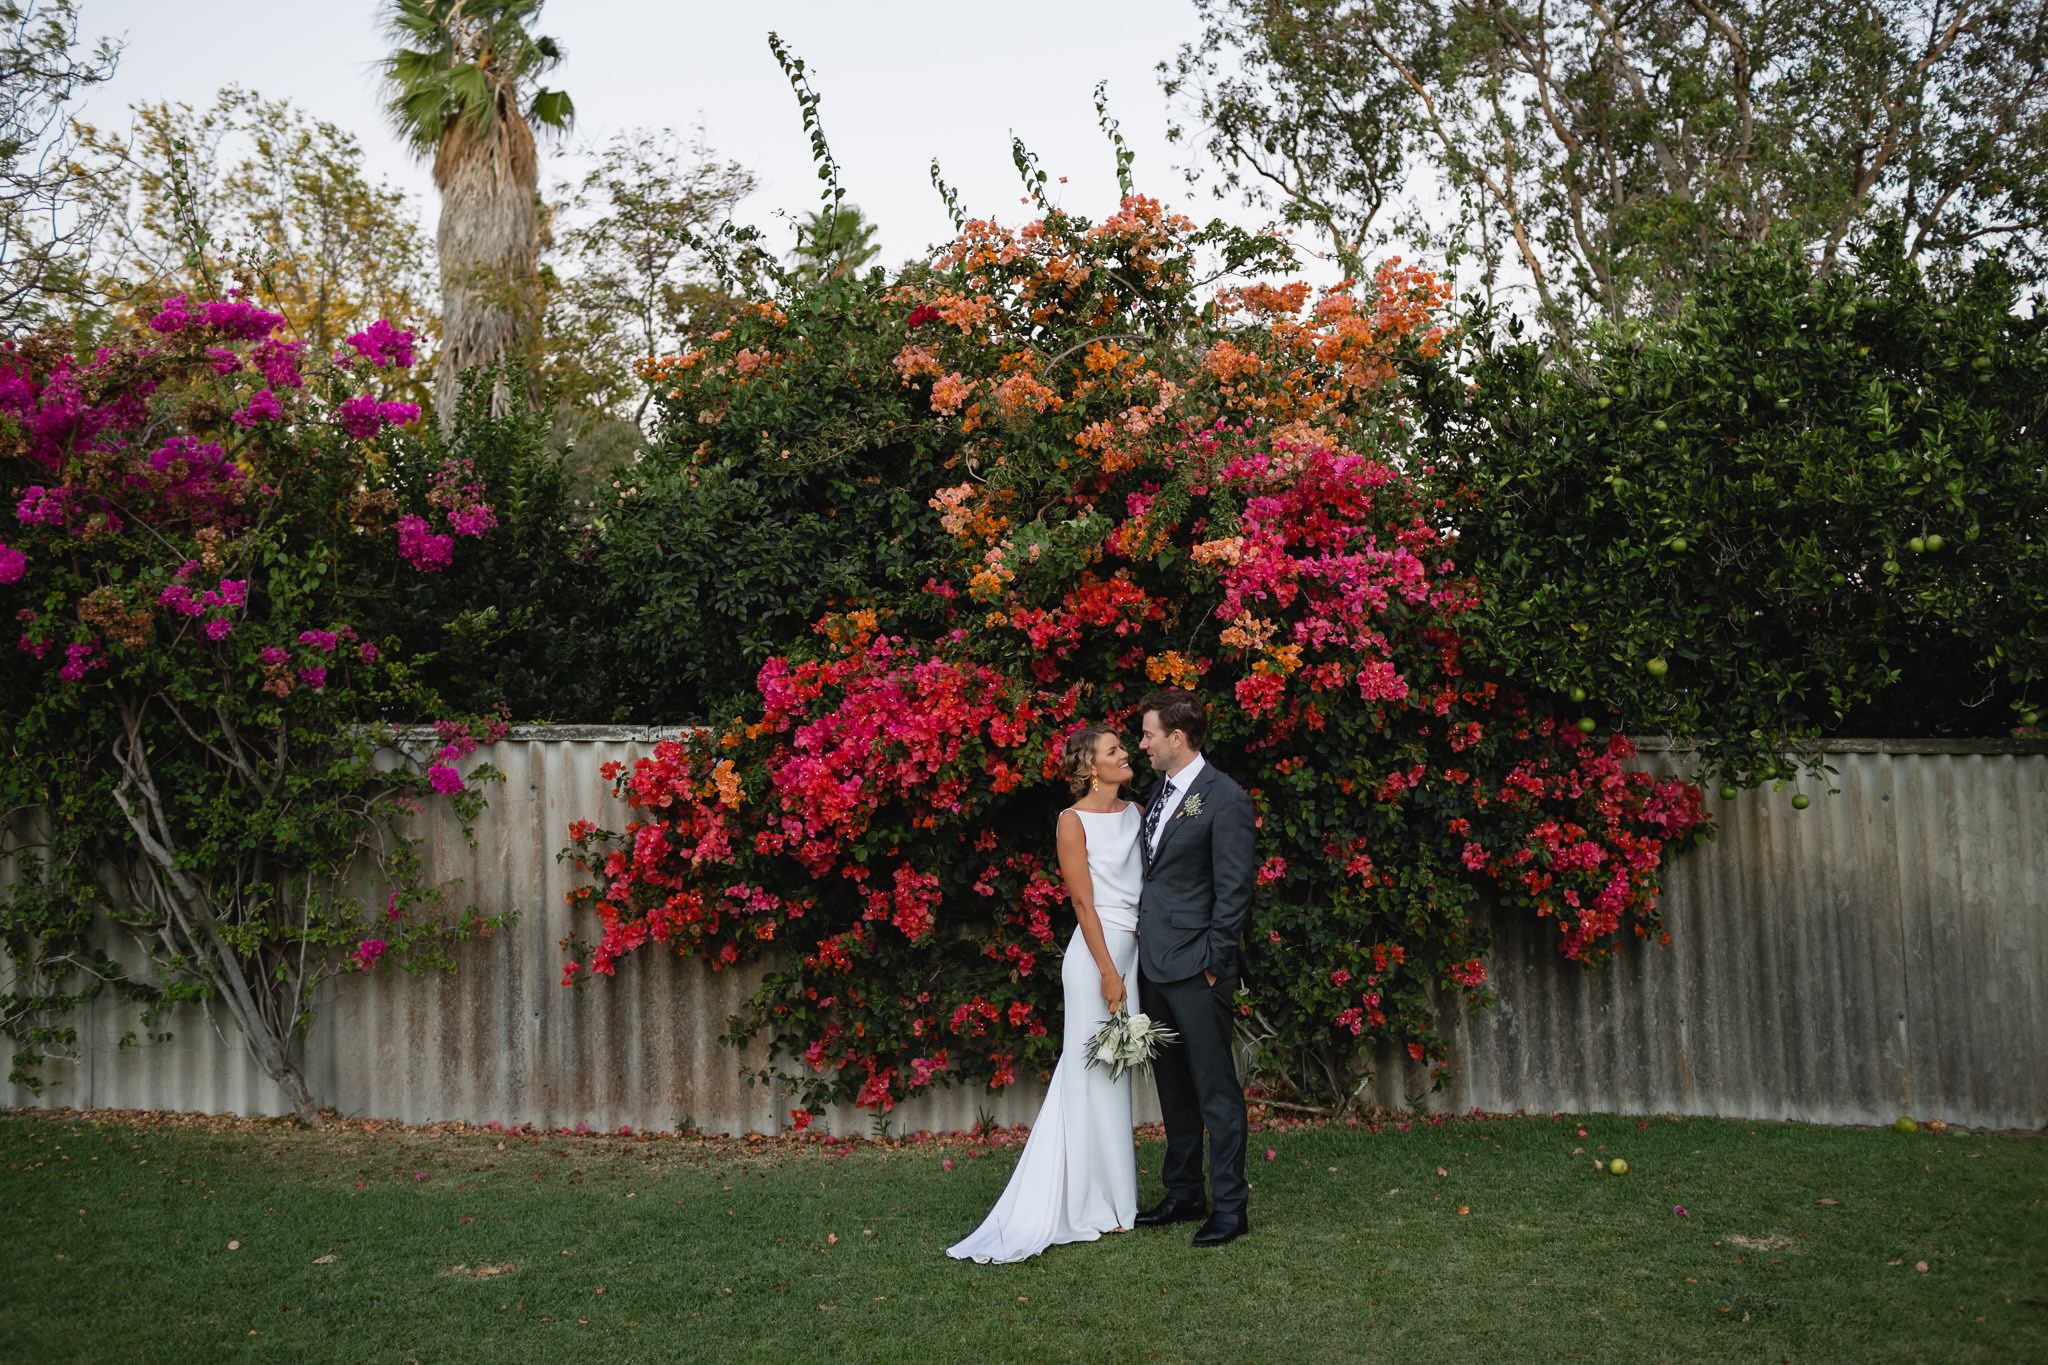 Modern bride and groom standing in front of colourful red, pink and purple Bougainvillea on front verge at their backyard wedding in Dalkeith in Western Australia